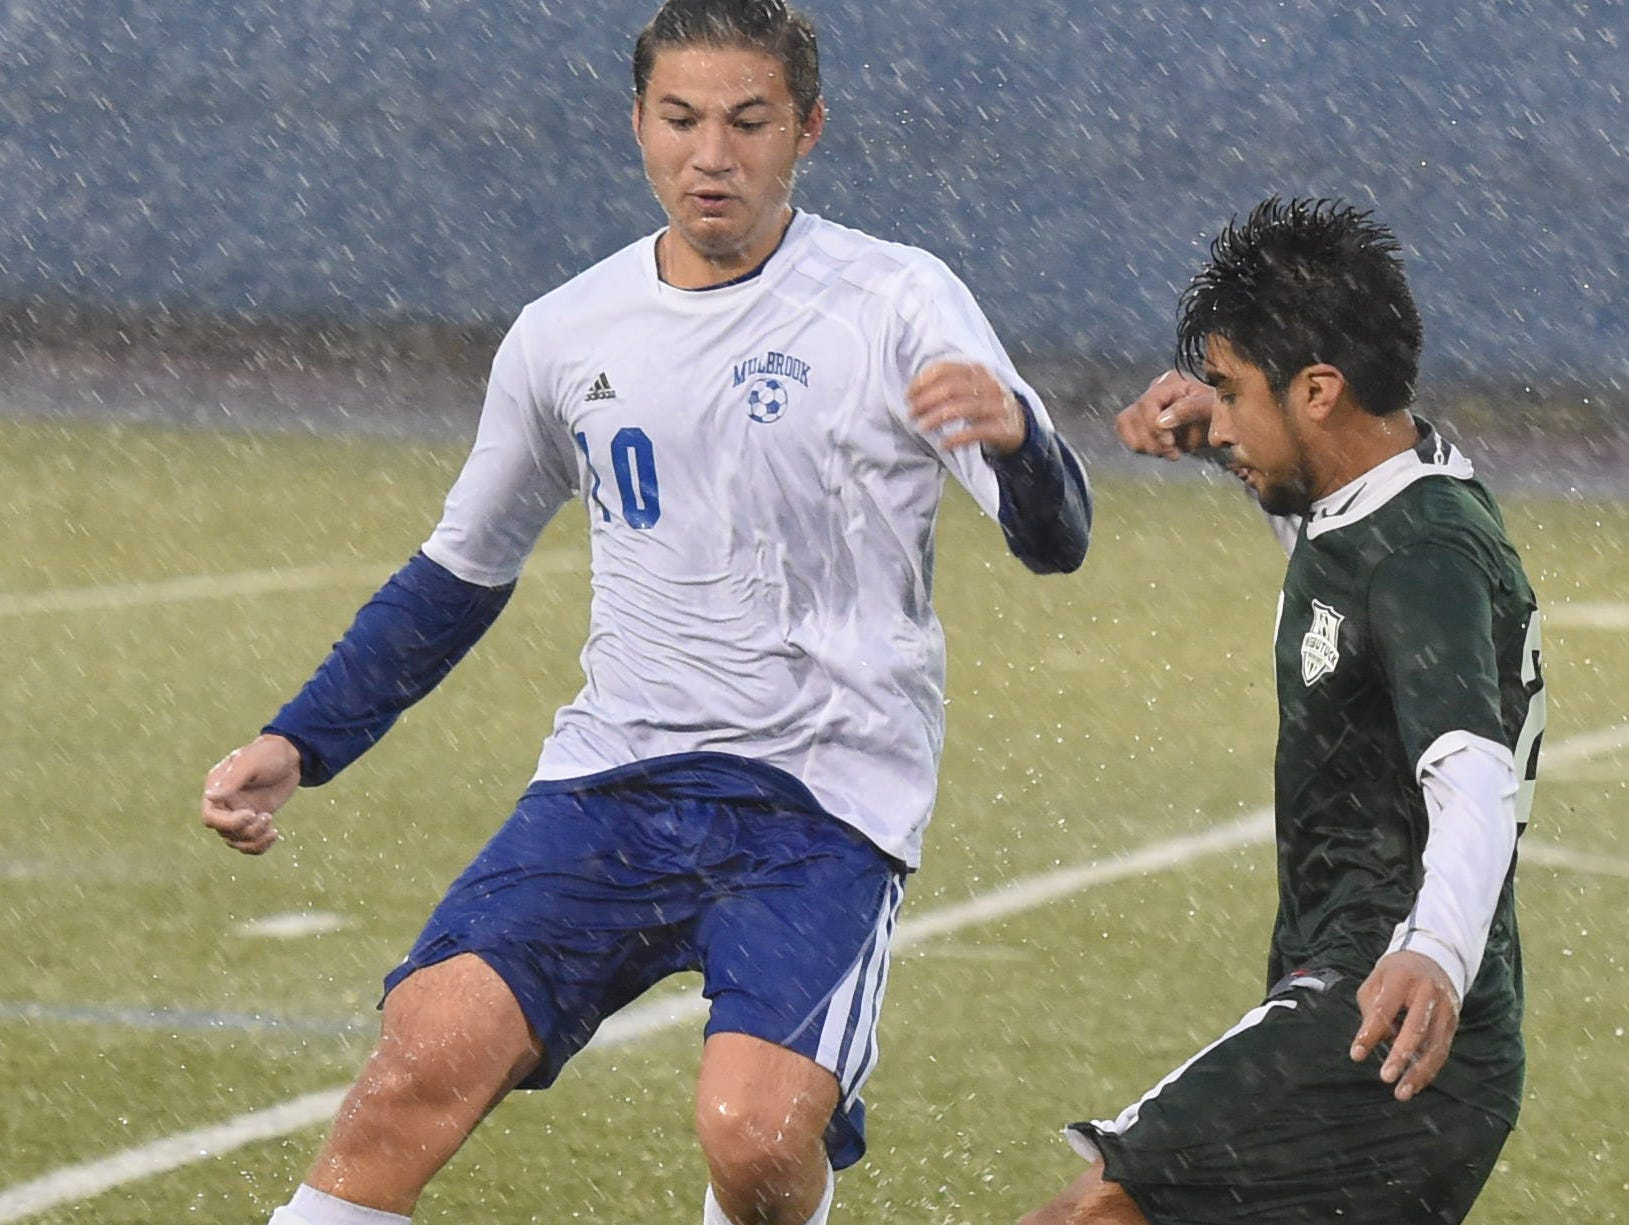 Webutuck's Fabian Vega keeps the ball away from Millbrook's Alfredo Sosa during the Section 9 Class C boys soccer championship on Wednesday.